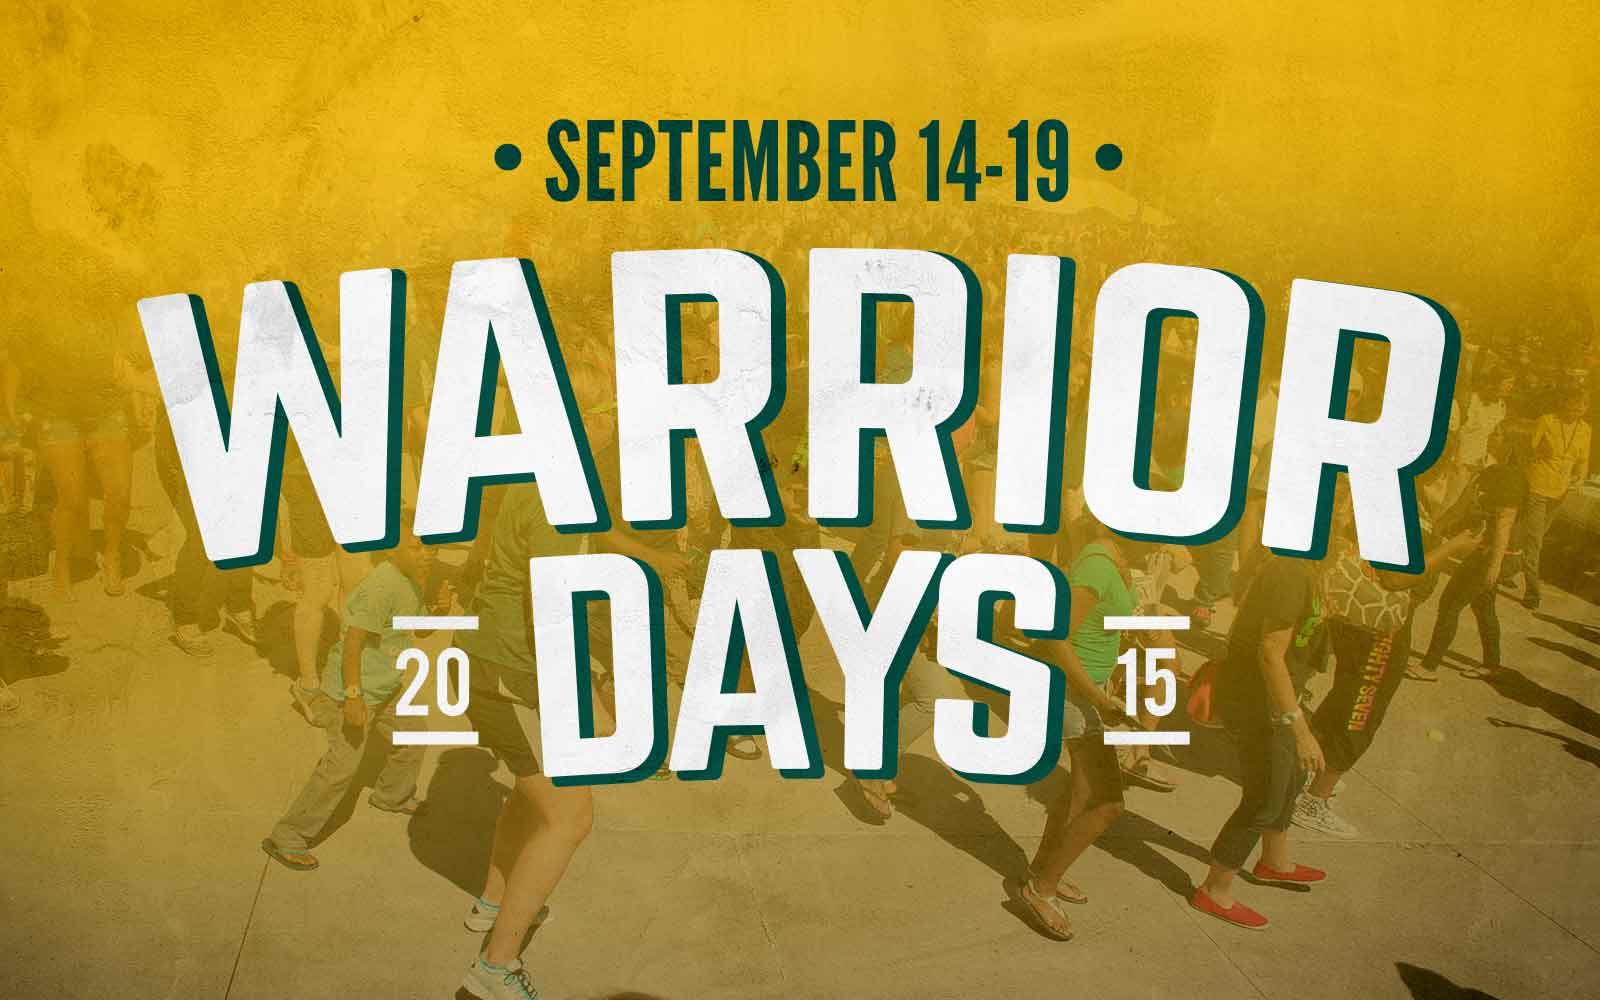 Warrior Days welcomes students back to campus